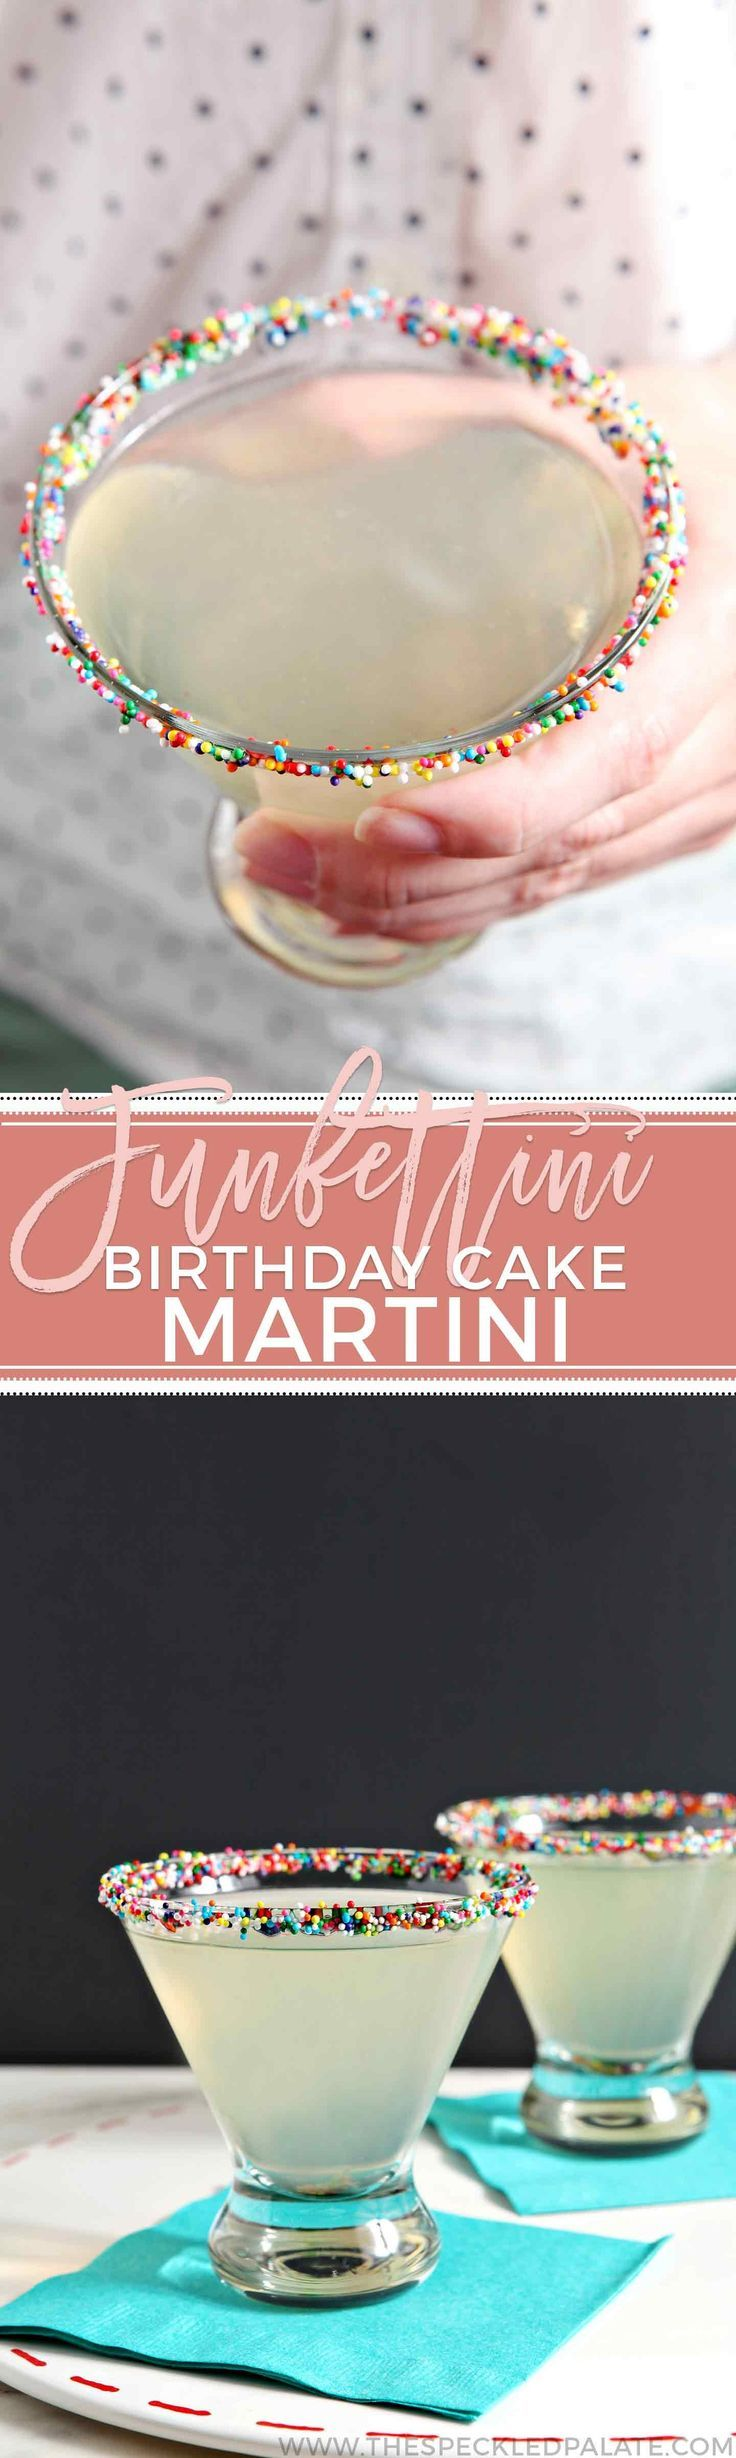 Shake up Funfettini Birthday Cake Martinis to celebrate any birthday in style! Funfettinis make the perfect dessert cocktail for any sort of revelry!